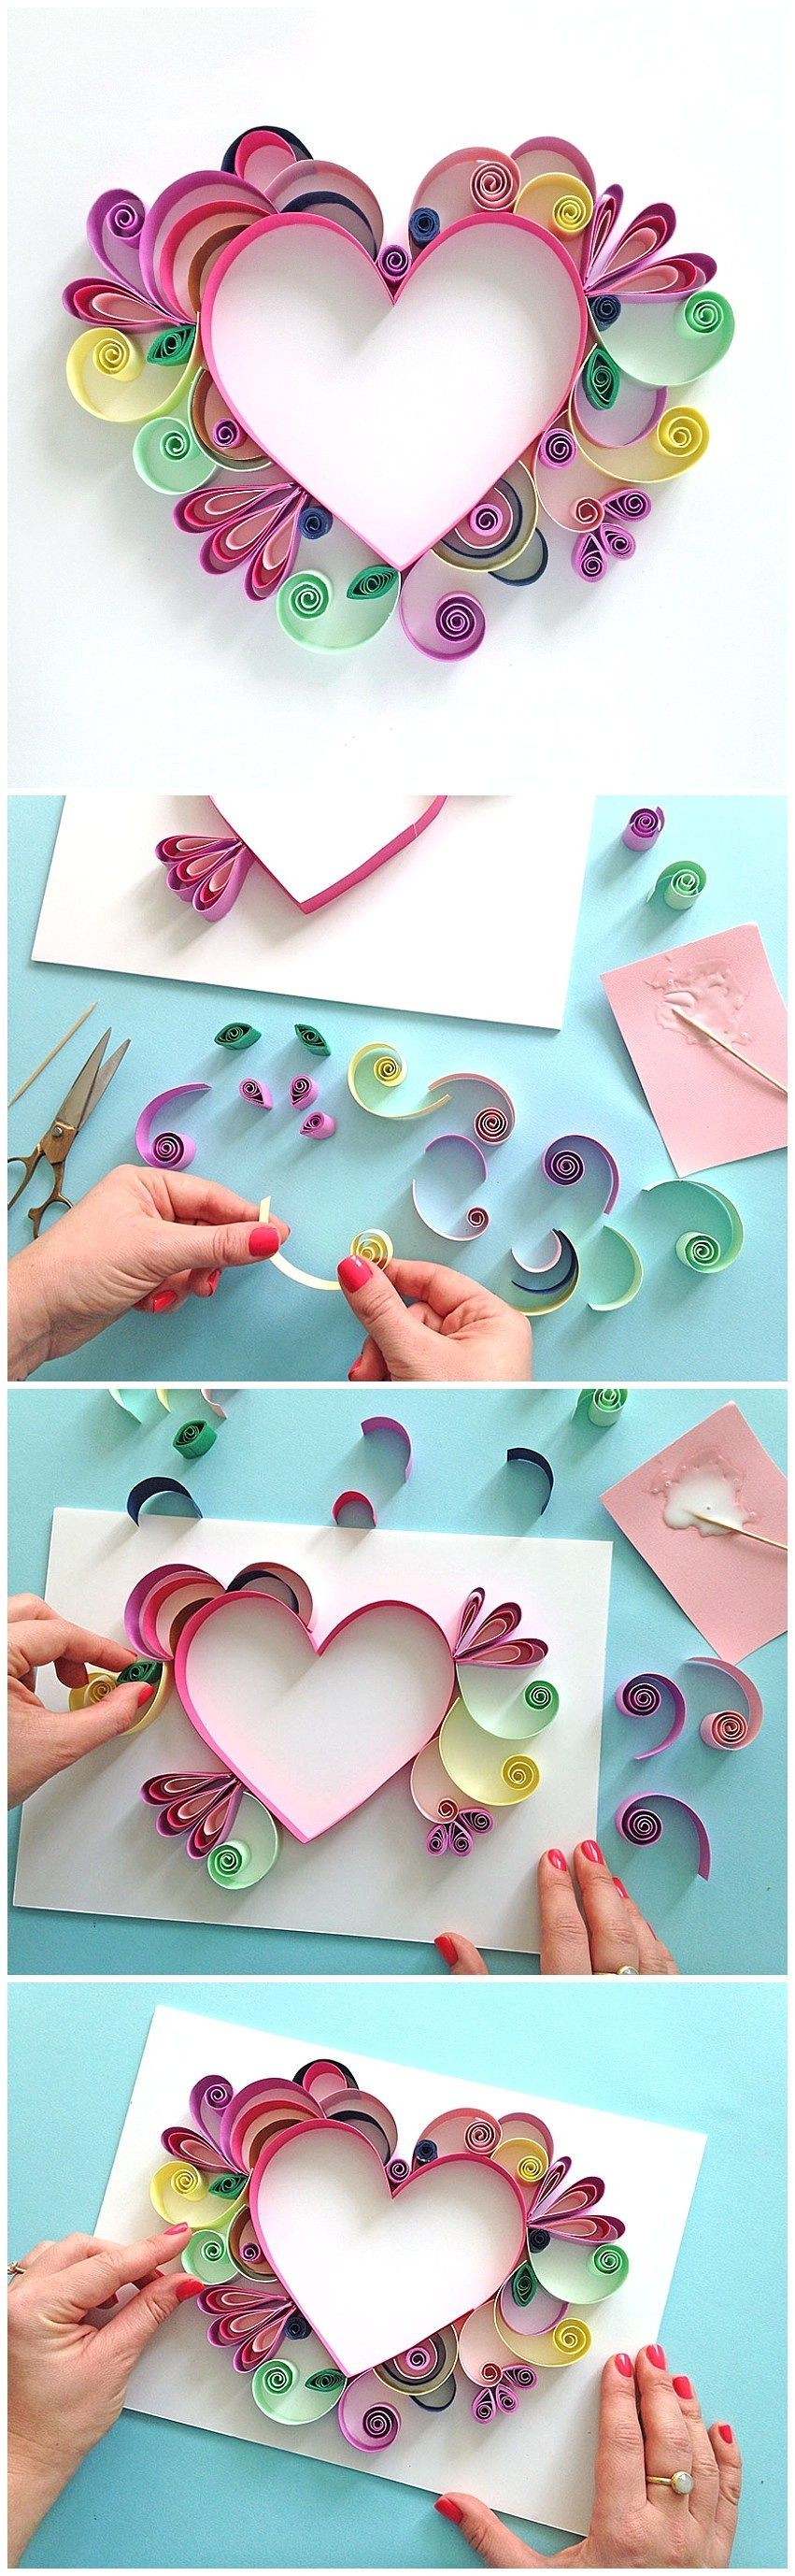 Learn How to Quill a darling Heart Shaped Mother's Day Paper Craft Gift Idea via Paper Chase - Moms and Grandmas will love these pretty handmade works of art! The BEST Easy DIY Mother's Day Gifts and Treats Ideas - Holiday Craft Activity Projects, Free Printables and Favorite Brunch Desserts Recipes for Moms and Grandmas #artsandcrafts